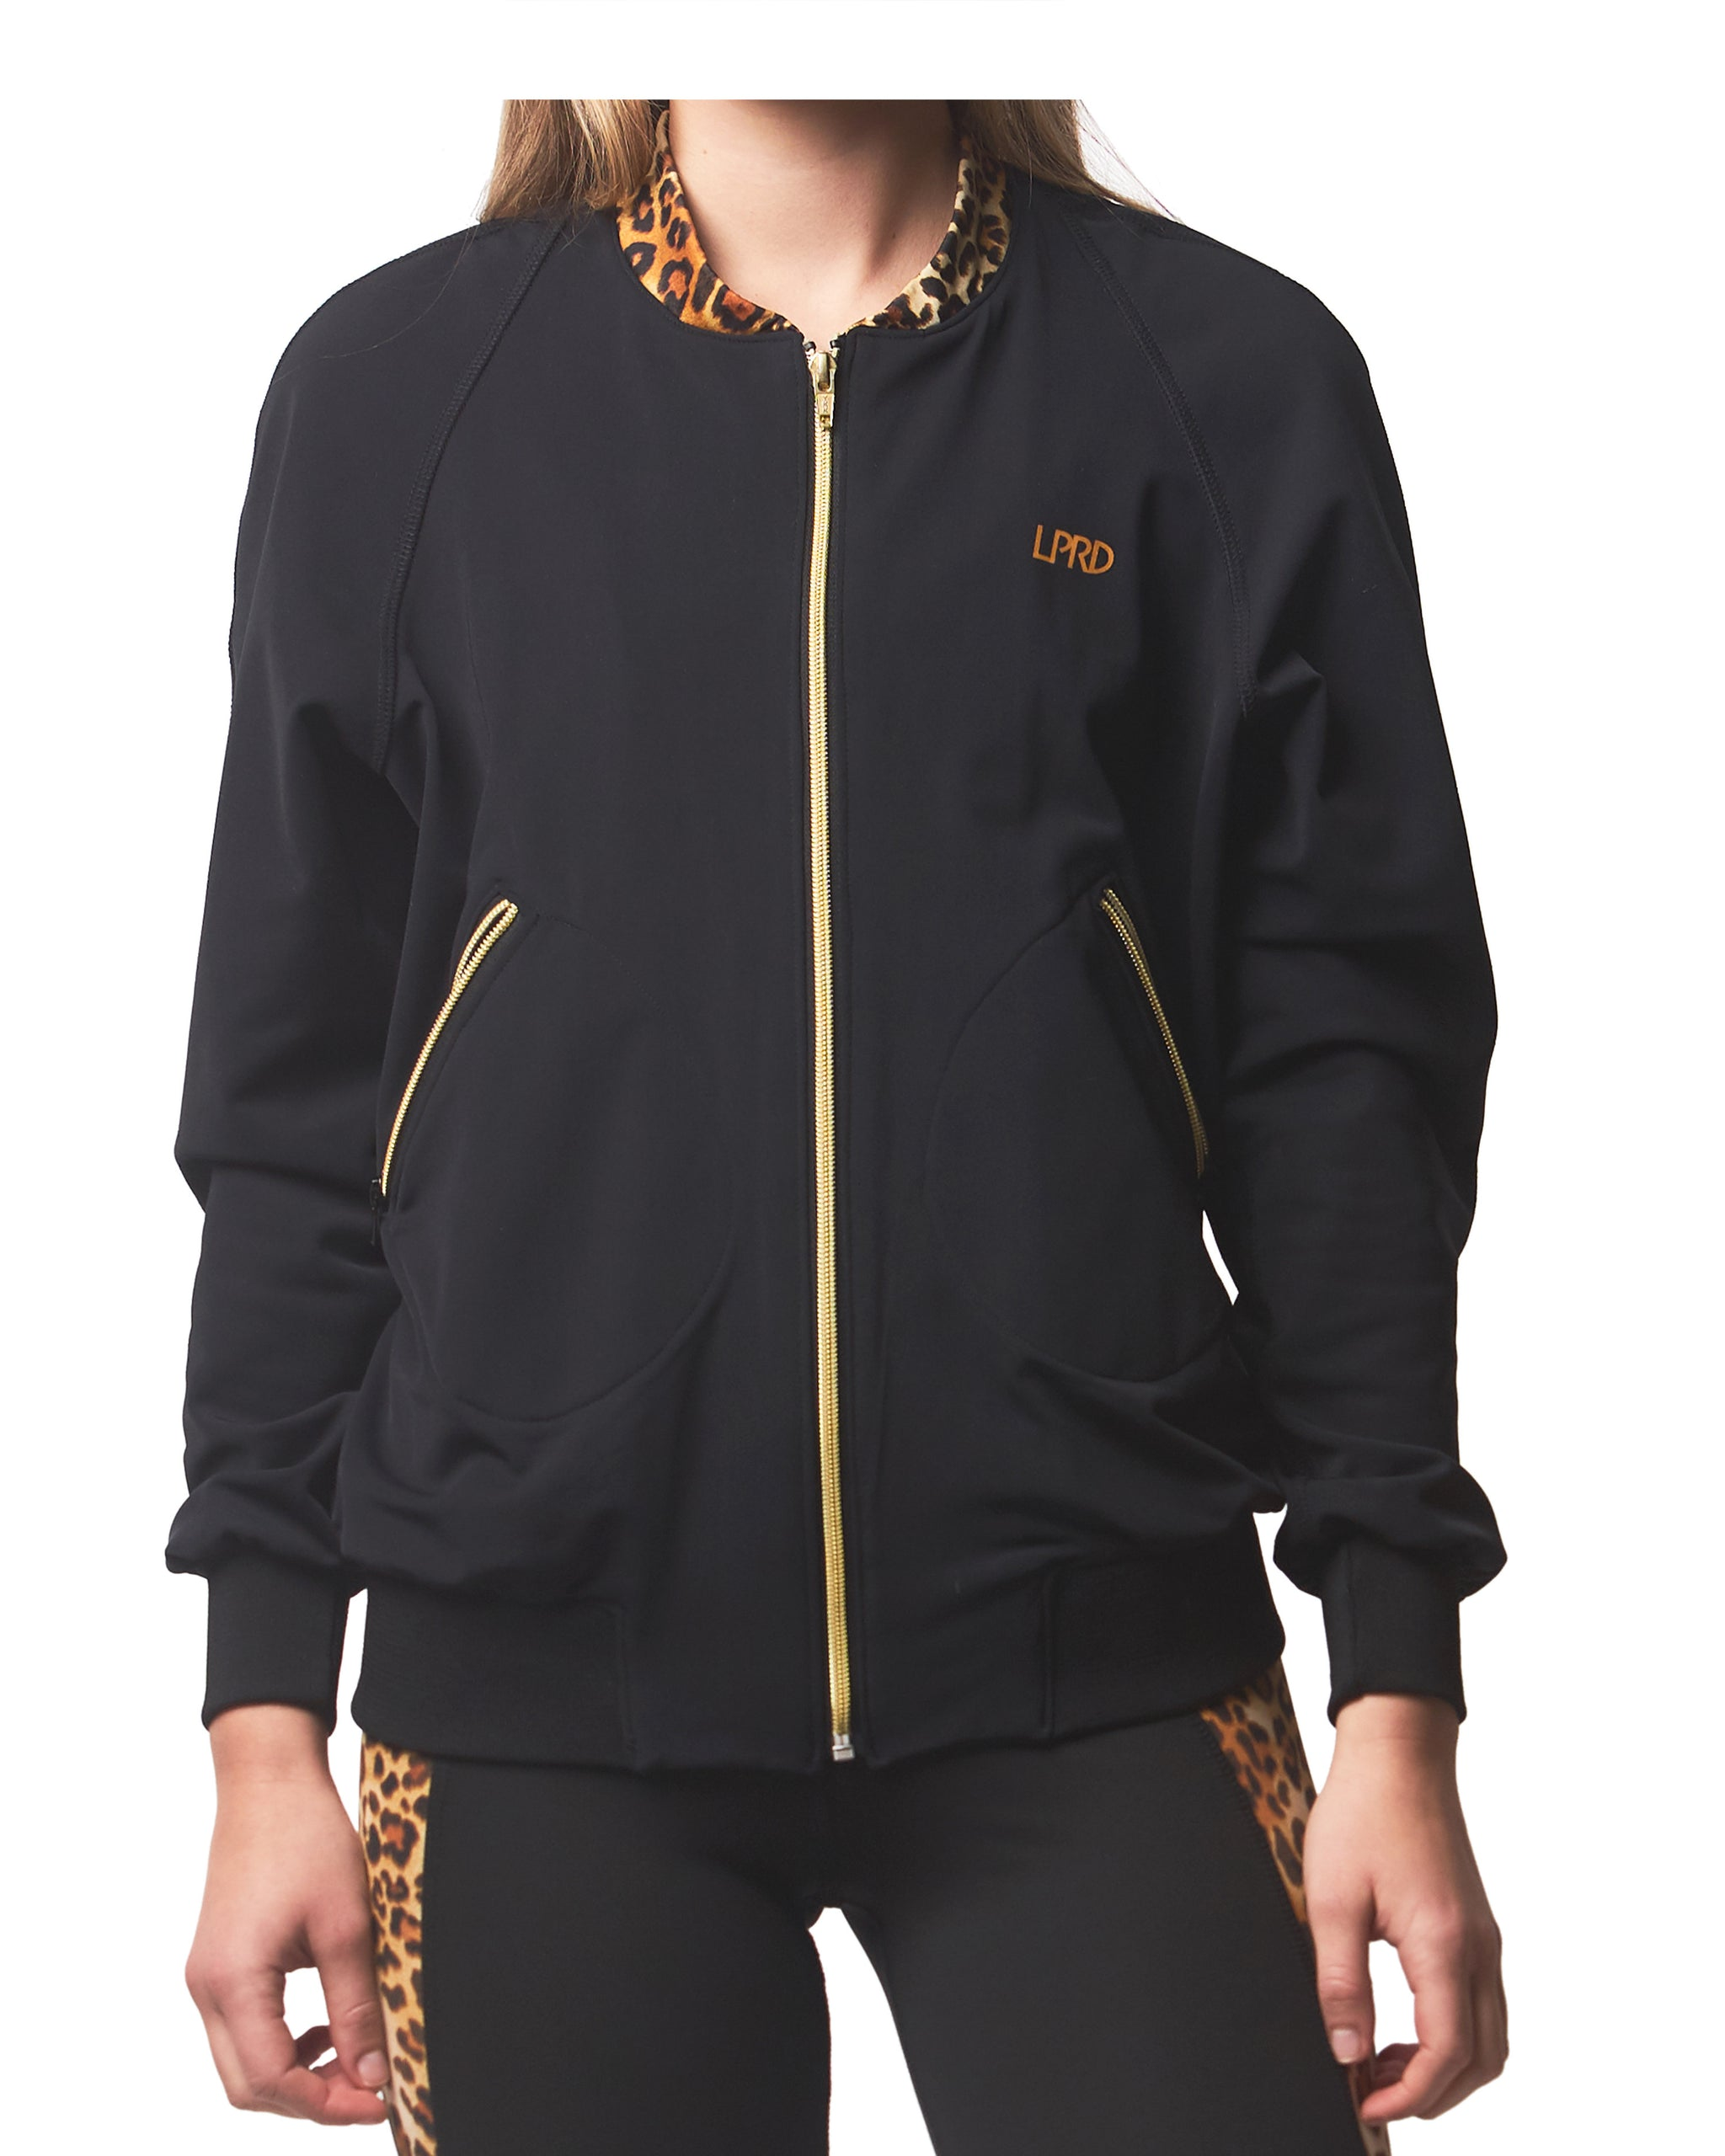 LPRD Bomber Tracksuit Jacket | Front View Close